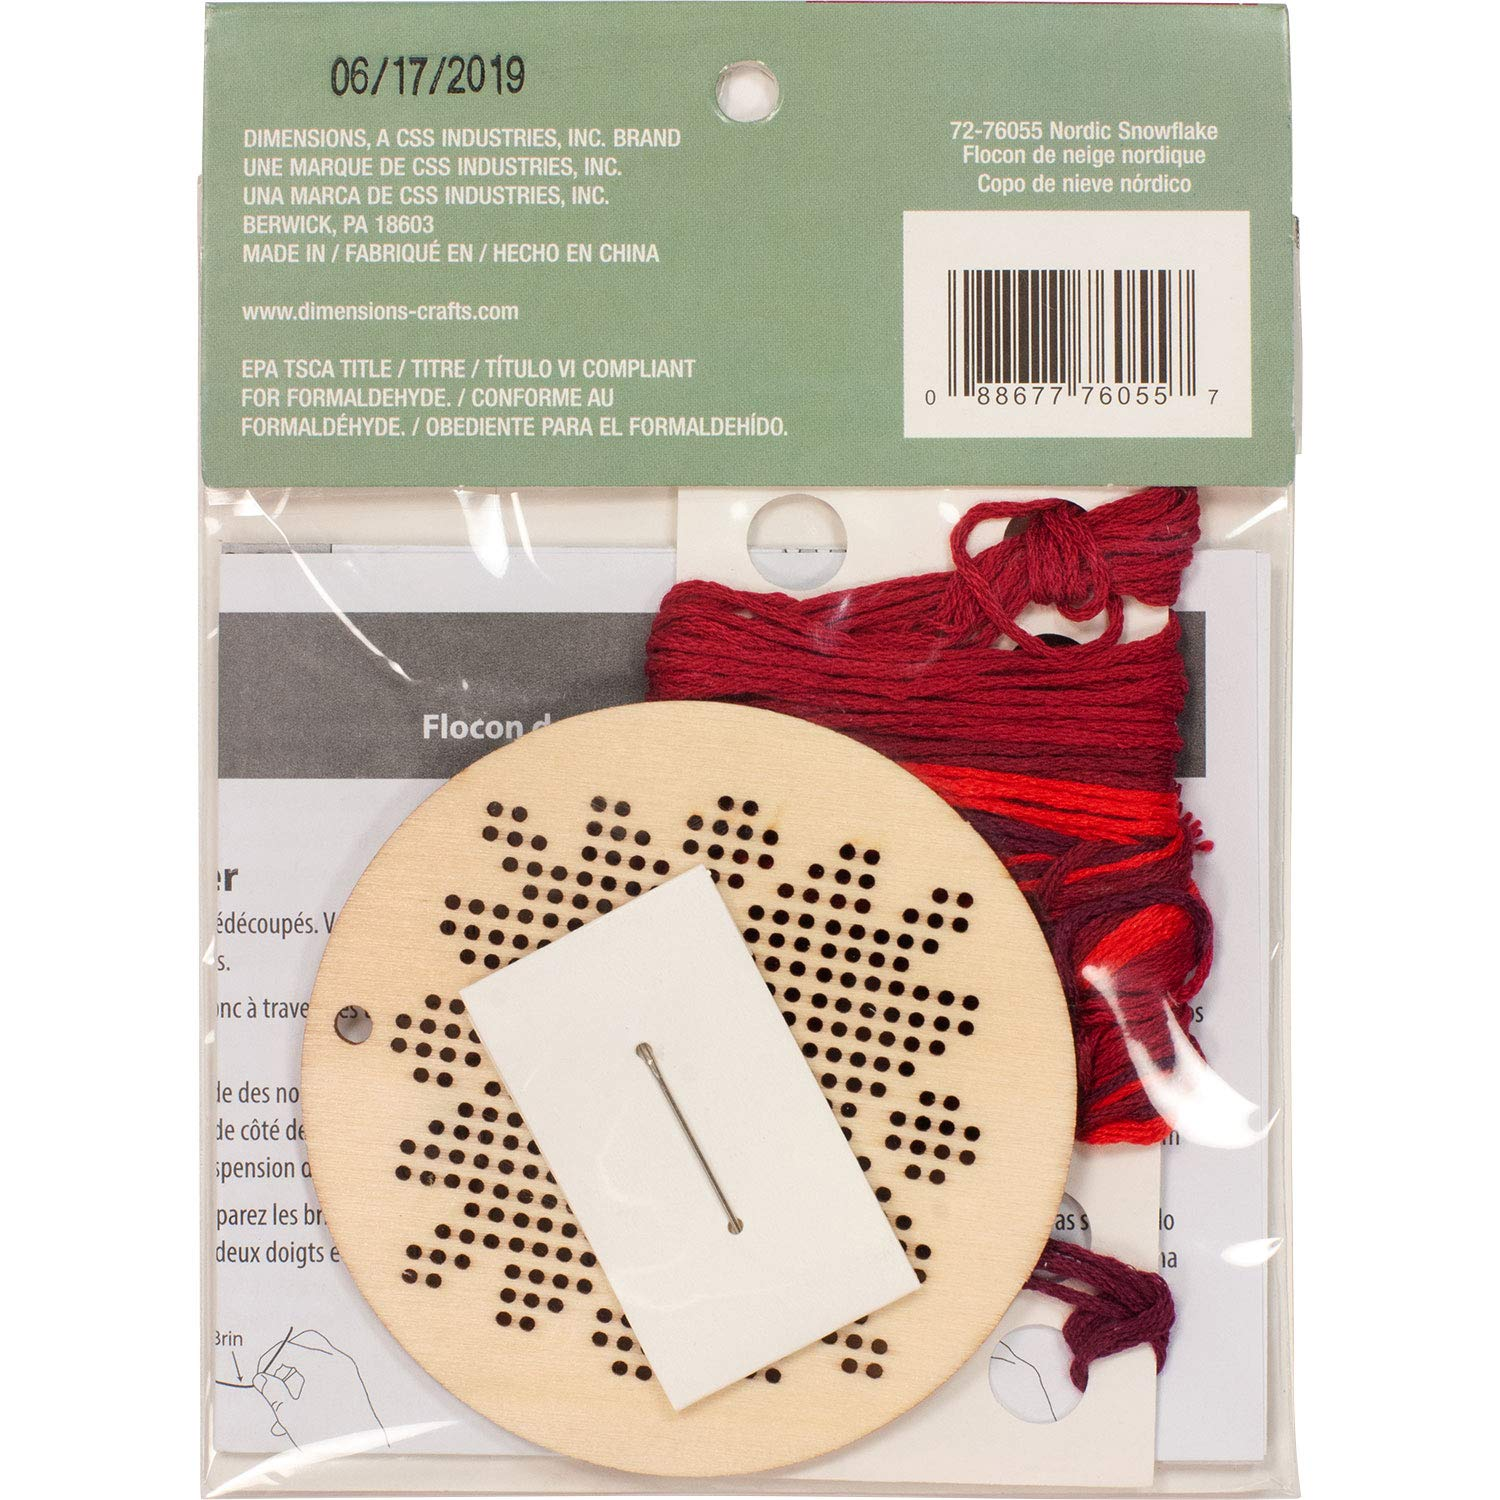 1 Pc Nordic Snowflake Wooden Christmas Ornament Craft Kit Dimensions 72-76055 Counted Cross Stitch